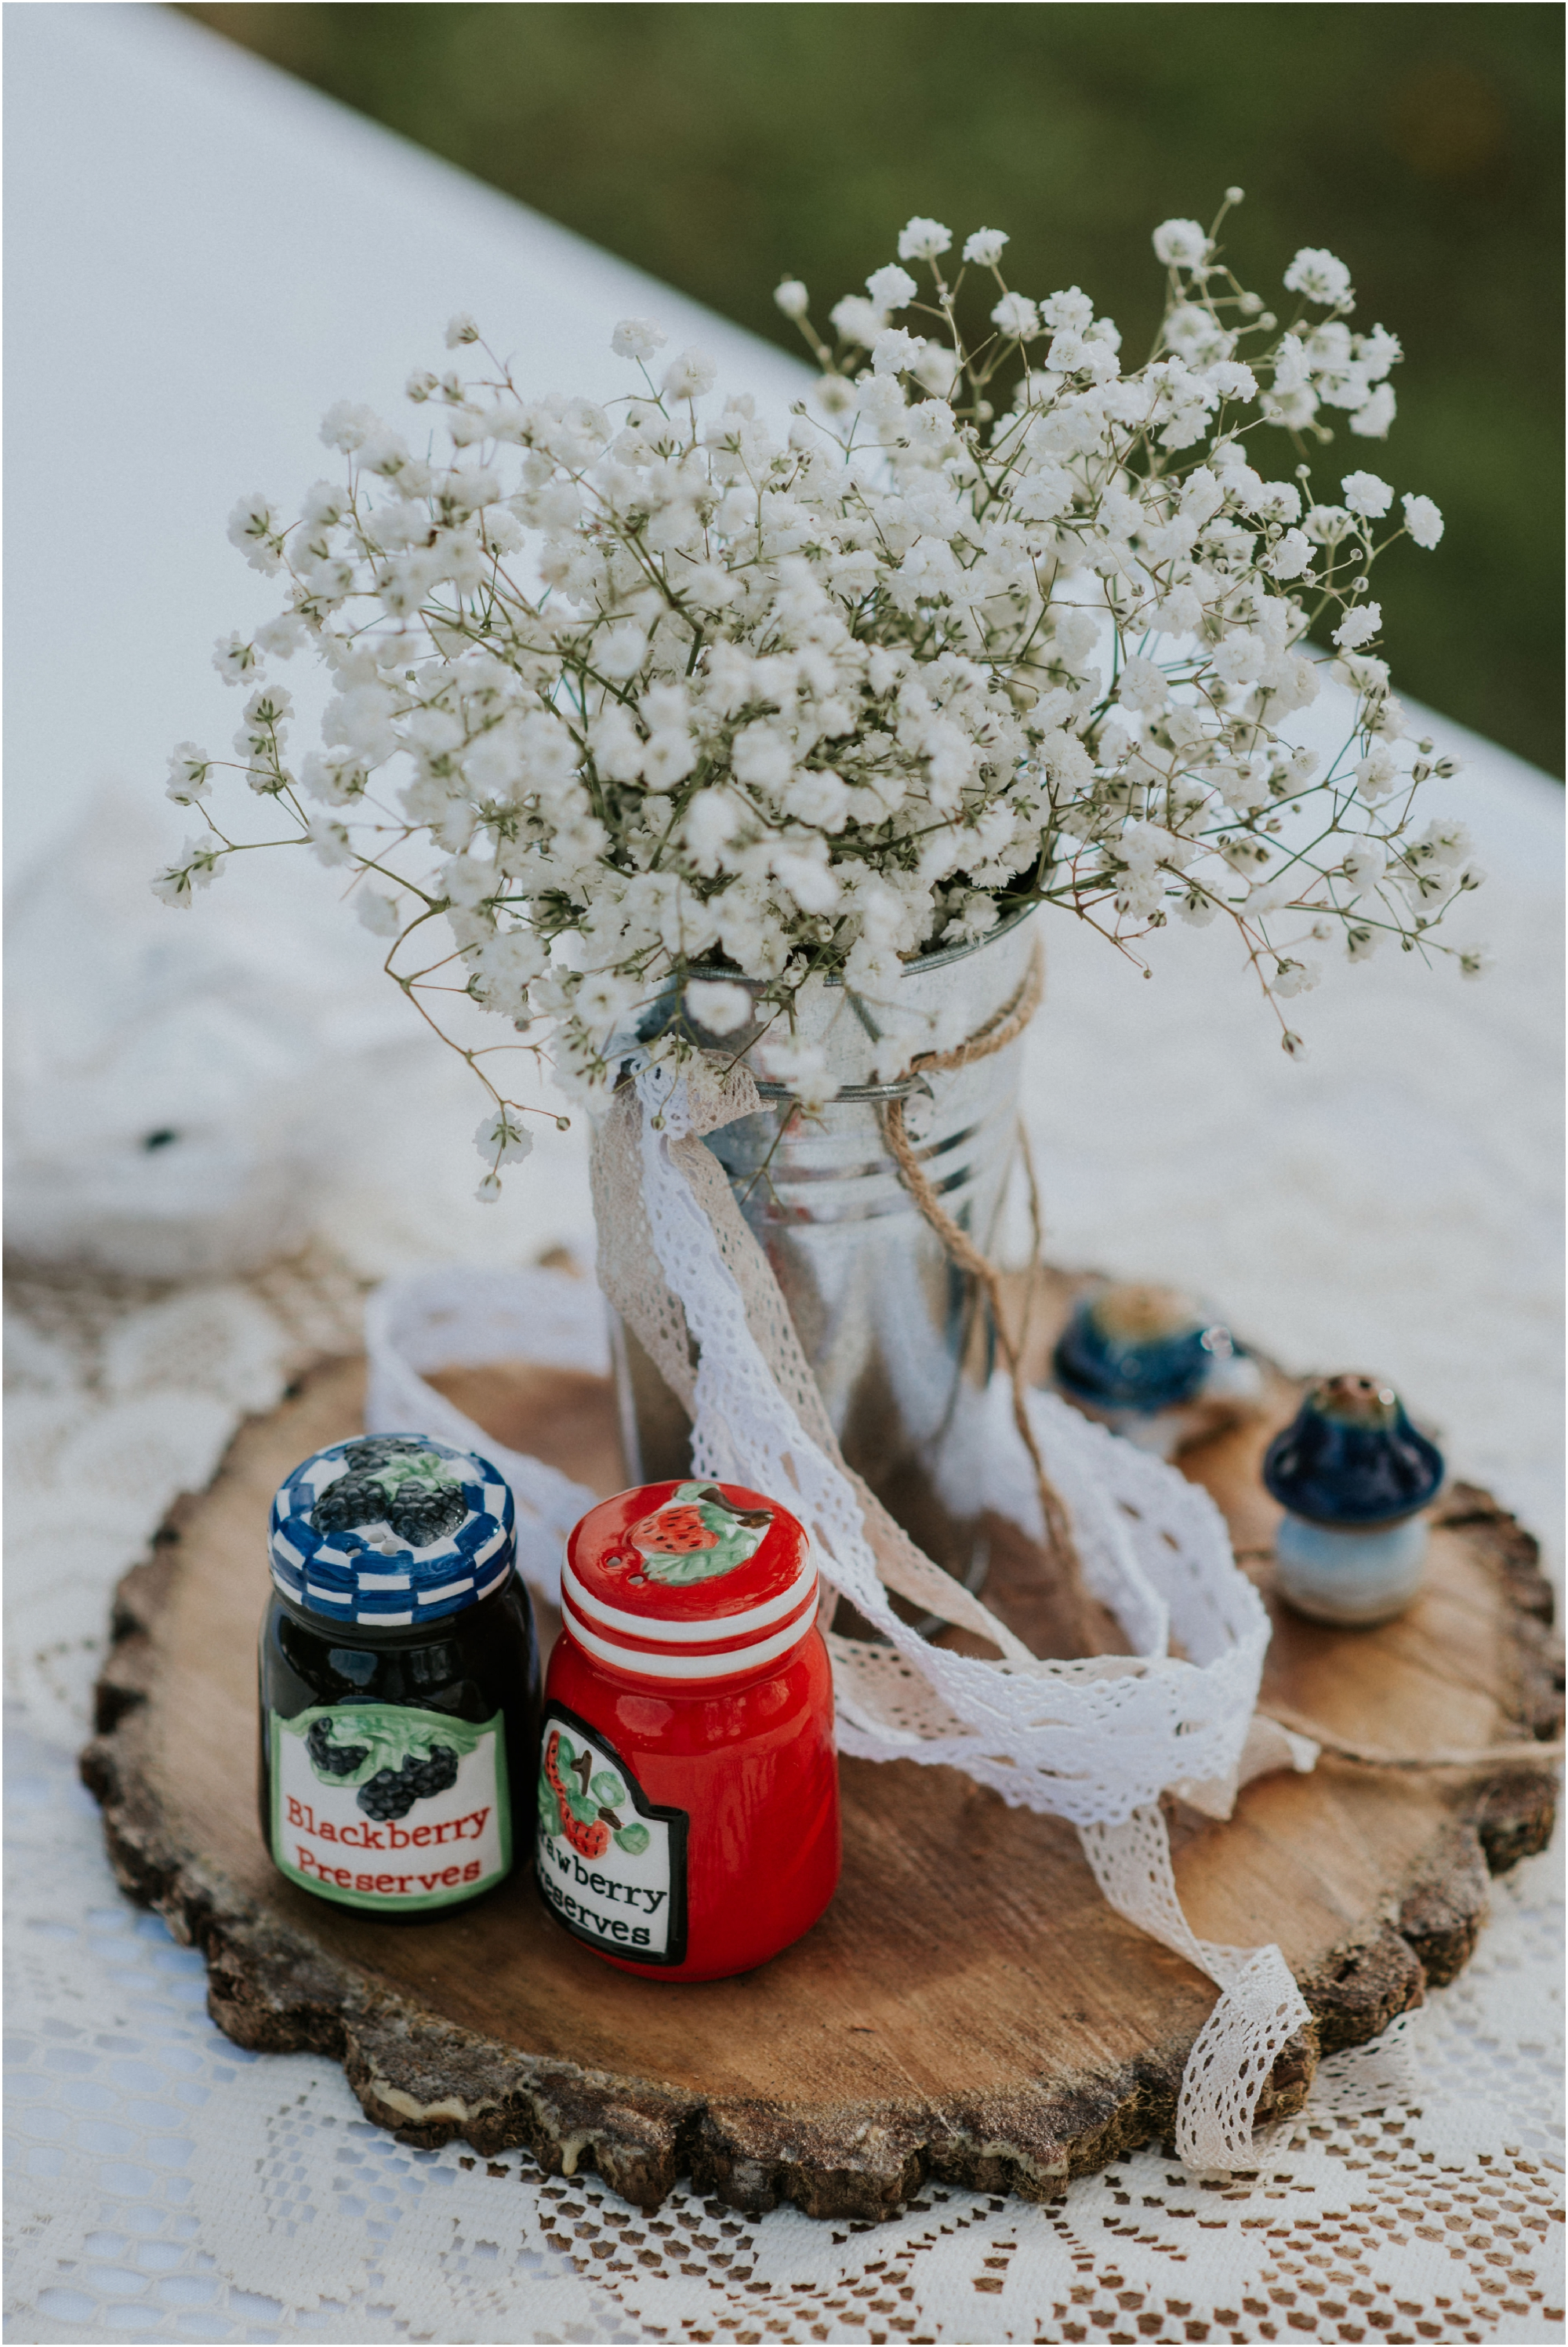 caryville-robbins-middle-tennessee-intimate-cozy-fall-navy-rustic-backyard-wedding_0108.jpg